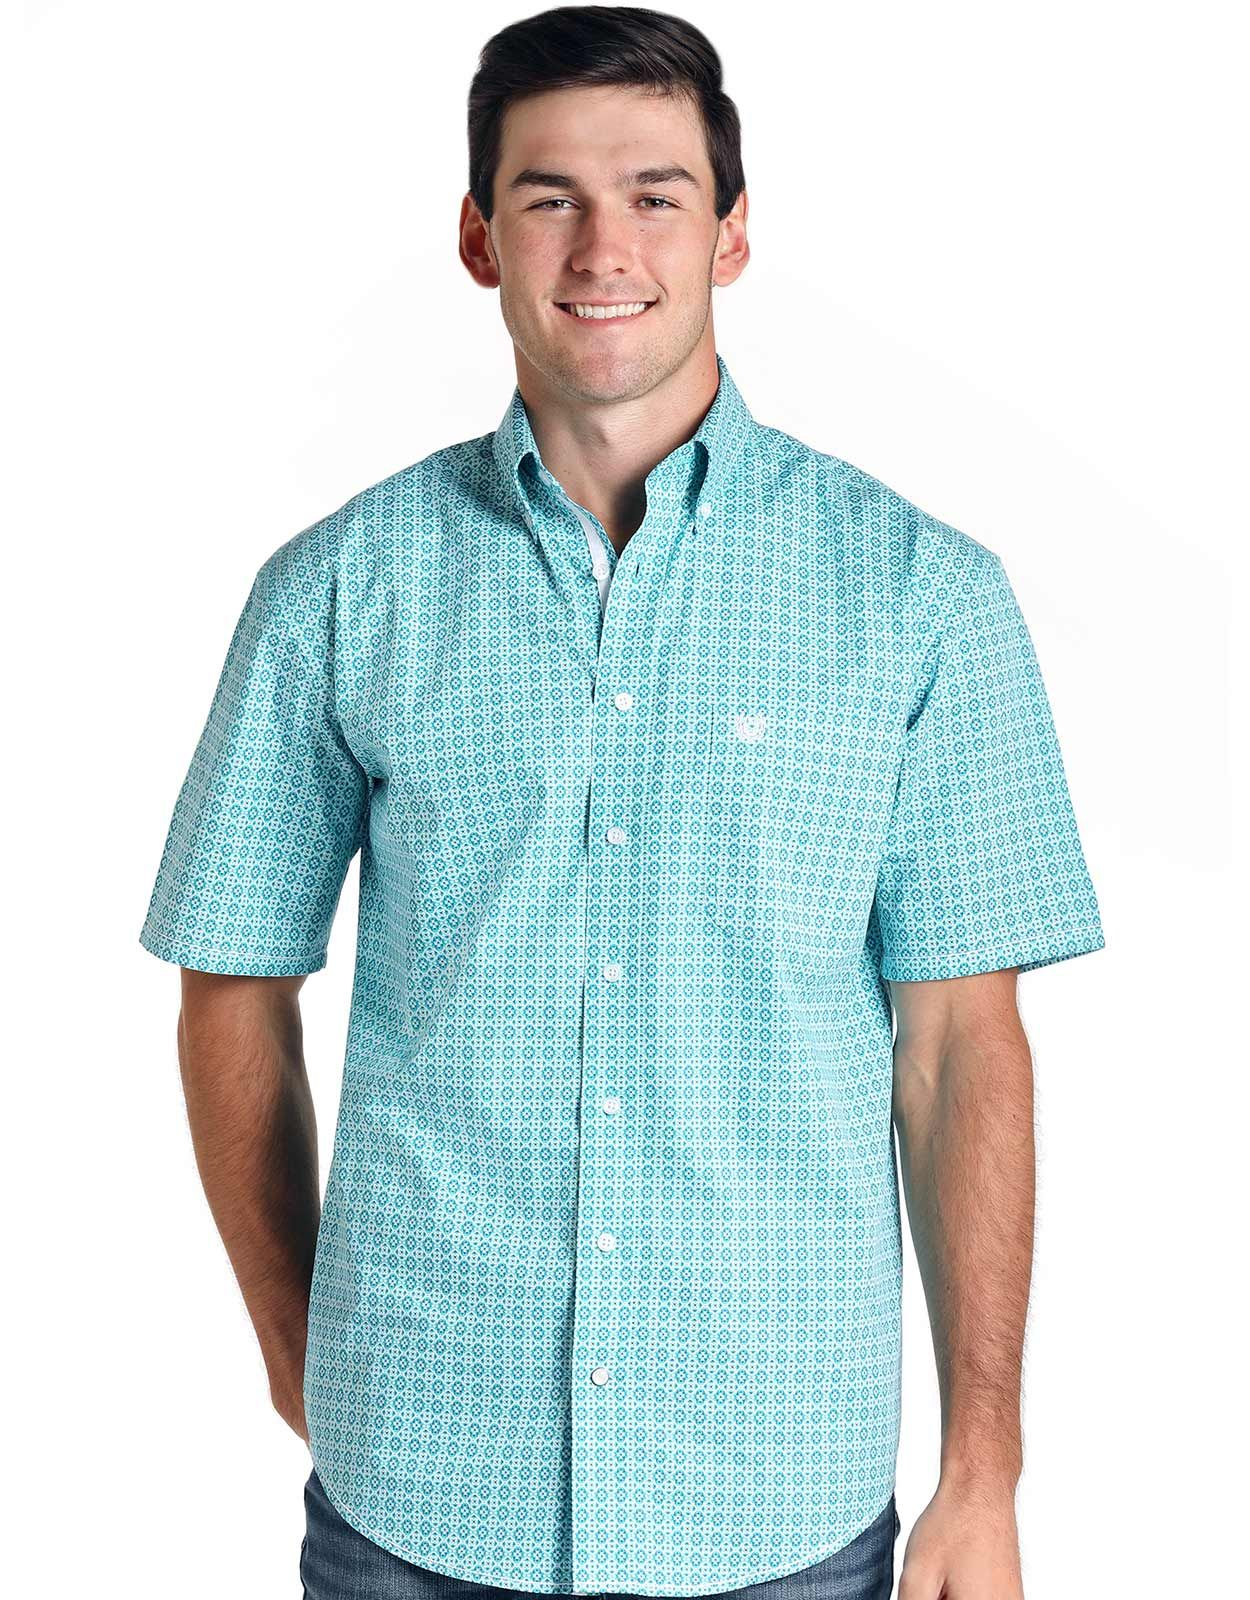 Rough Stock Men's Short Sleeve Print Button Down Shirt - Turquoise